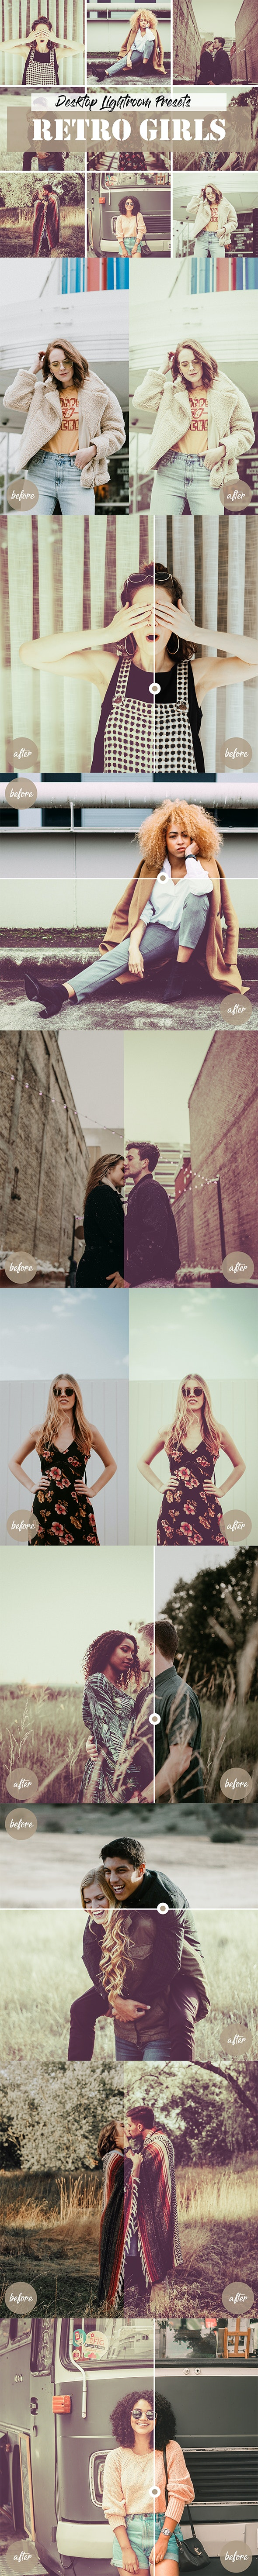 Lightroom Retro Girls Presets - Lightroom Presets Add-ons